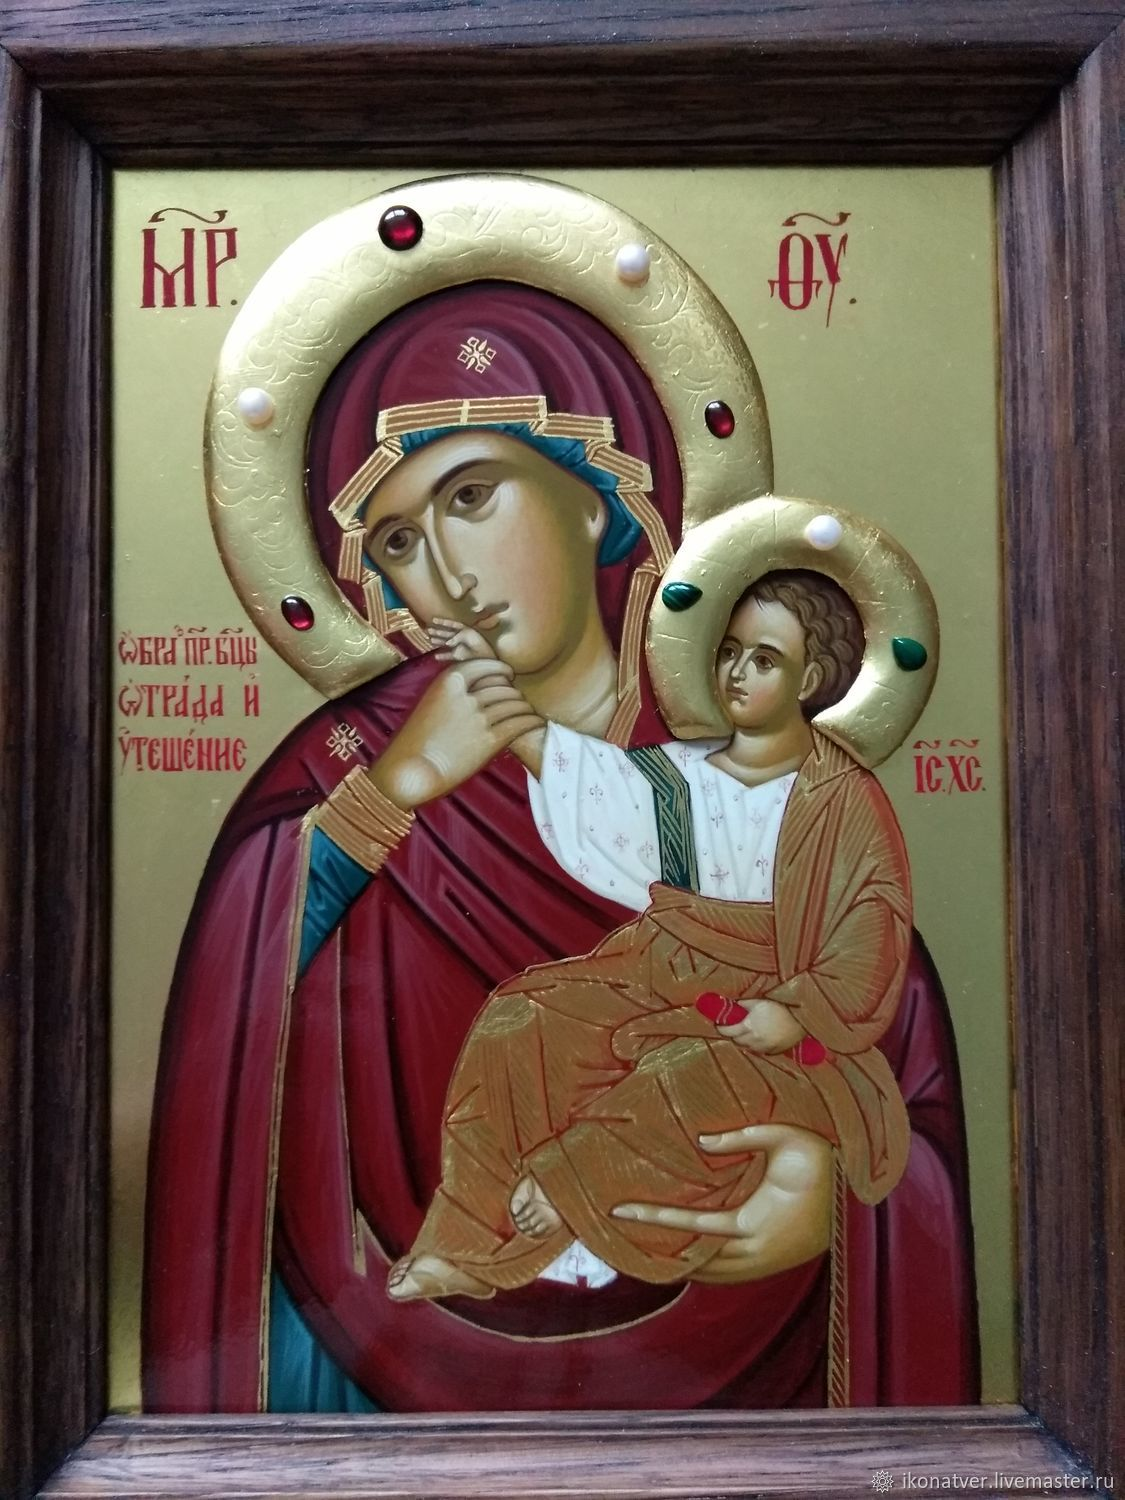 The Image Of PR.Virgin the joy and Consolation of Vatopedi